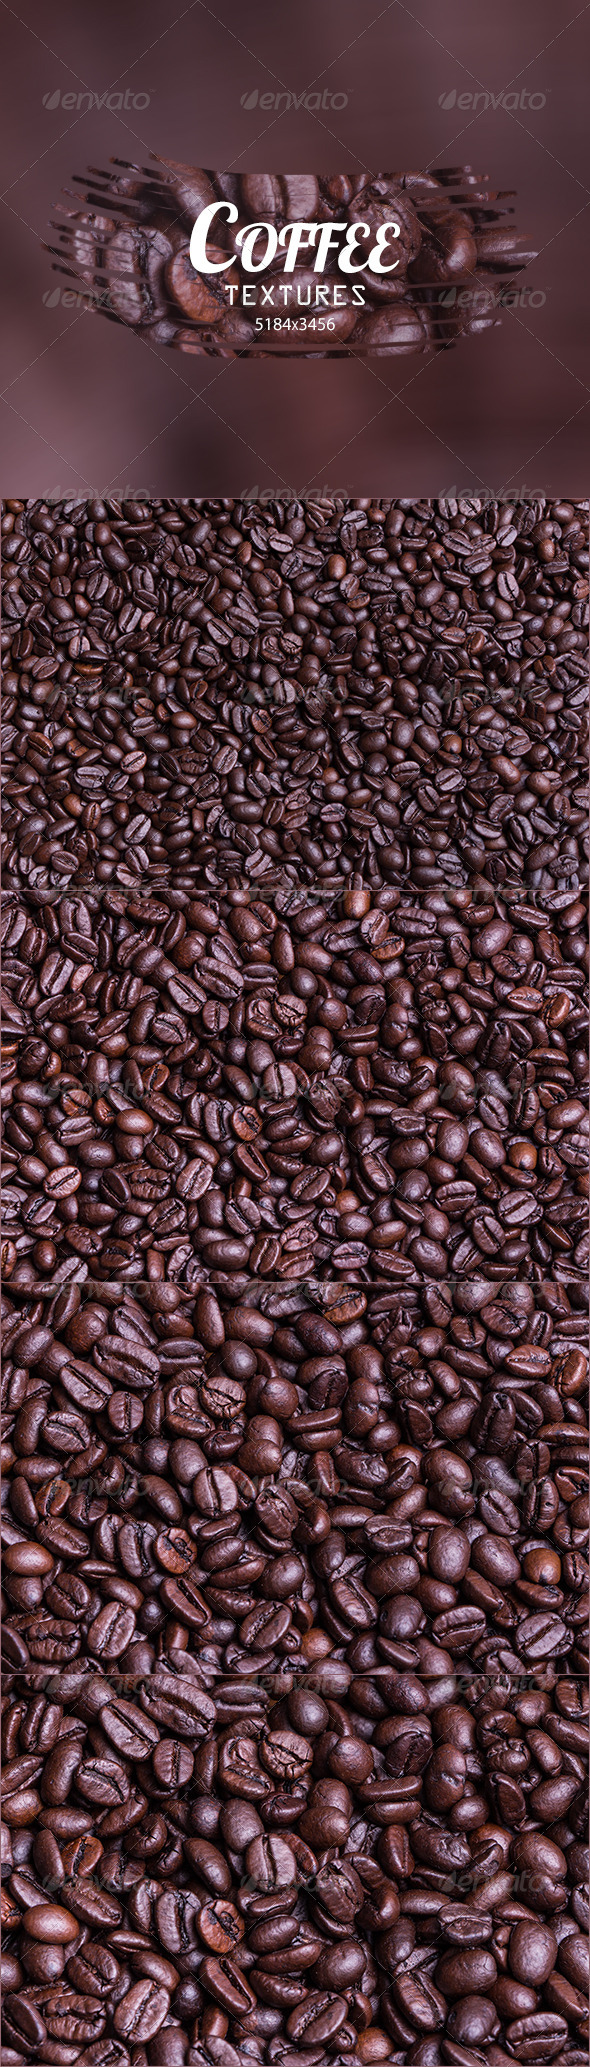 GraphicRiver Coffee Textures 4780765